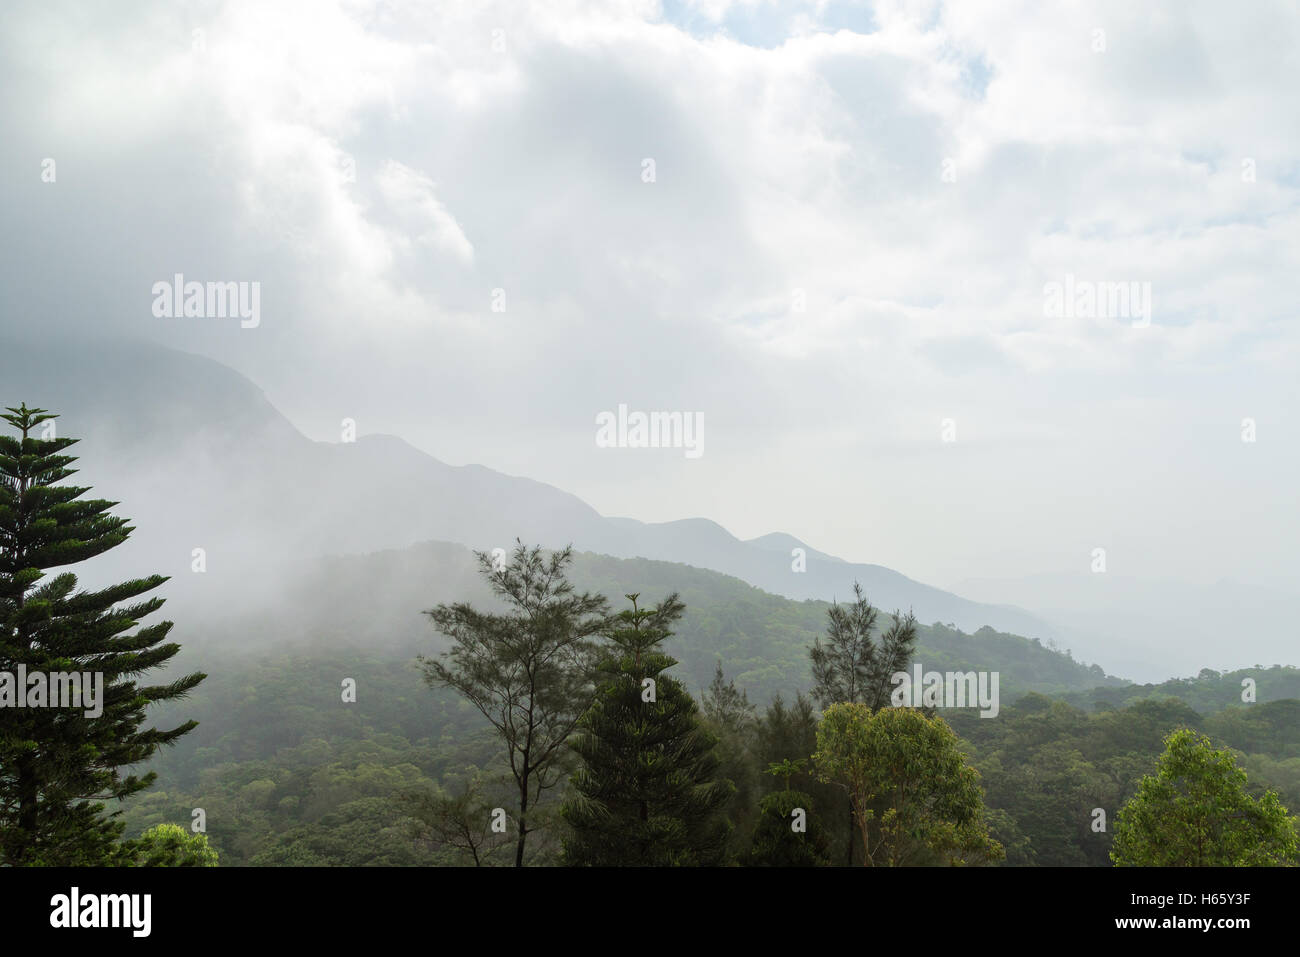 Cloudy view of lush forest and mountain on the Lantau Island in Hong Kong, China. Copy space. - Stock Image